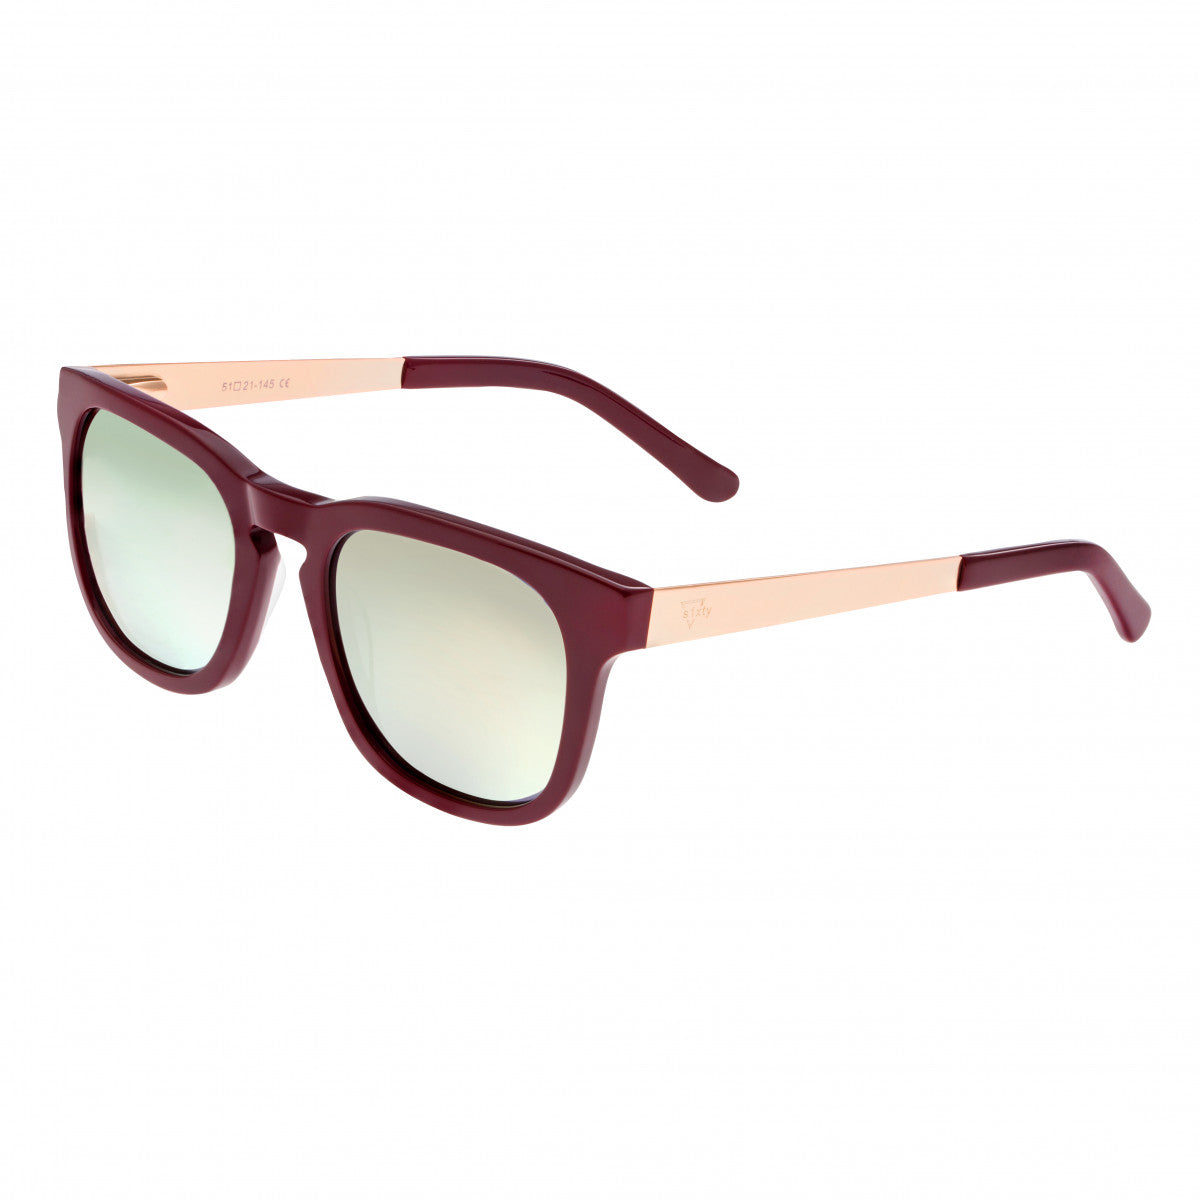 Sixty One Twinbow Polarized Sunglasses - Burgandy/Gold